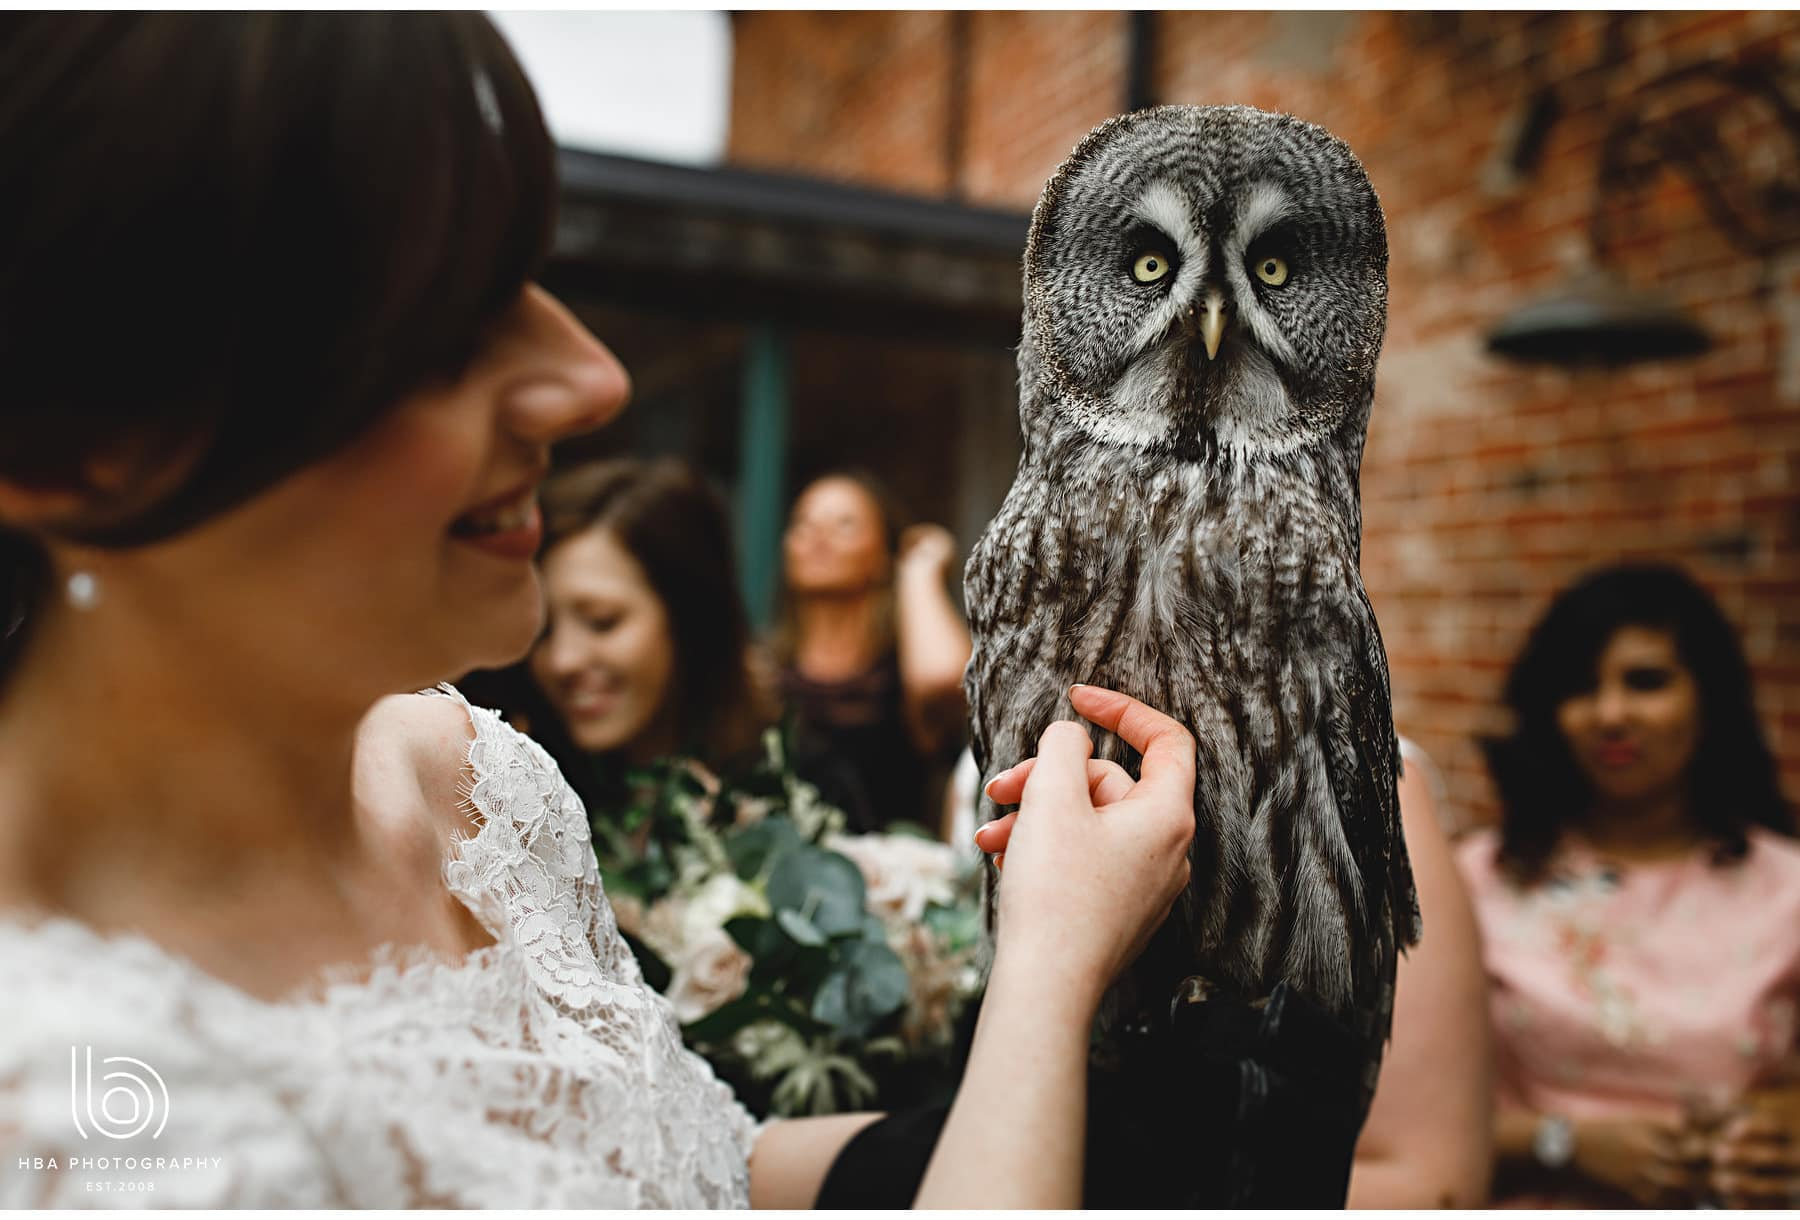 the bride with an owl